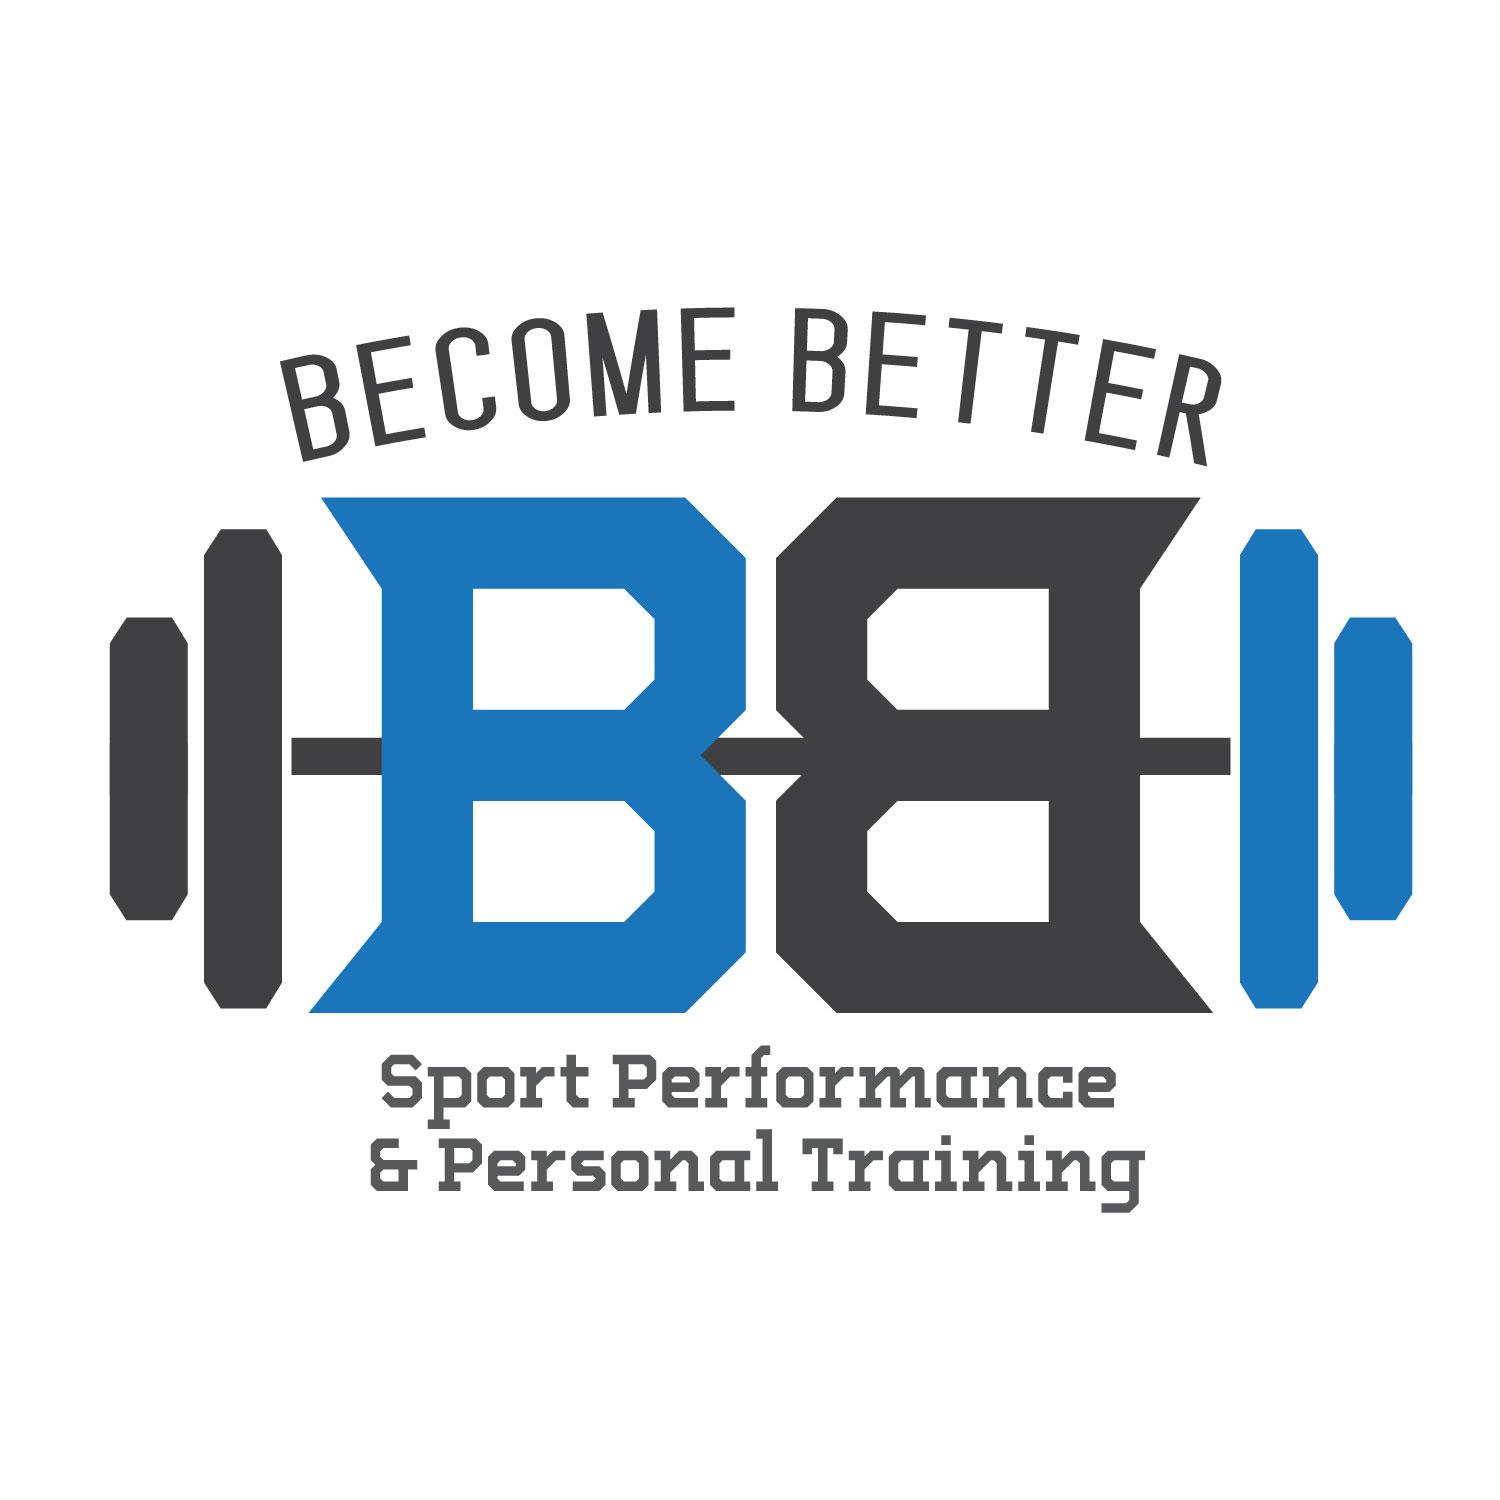 Dan Knorr's Become Better Sport Performance and Personal Training